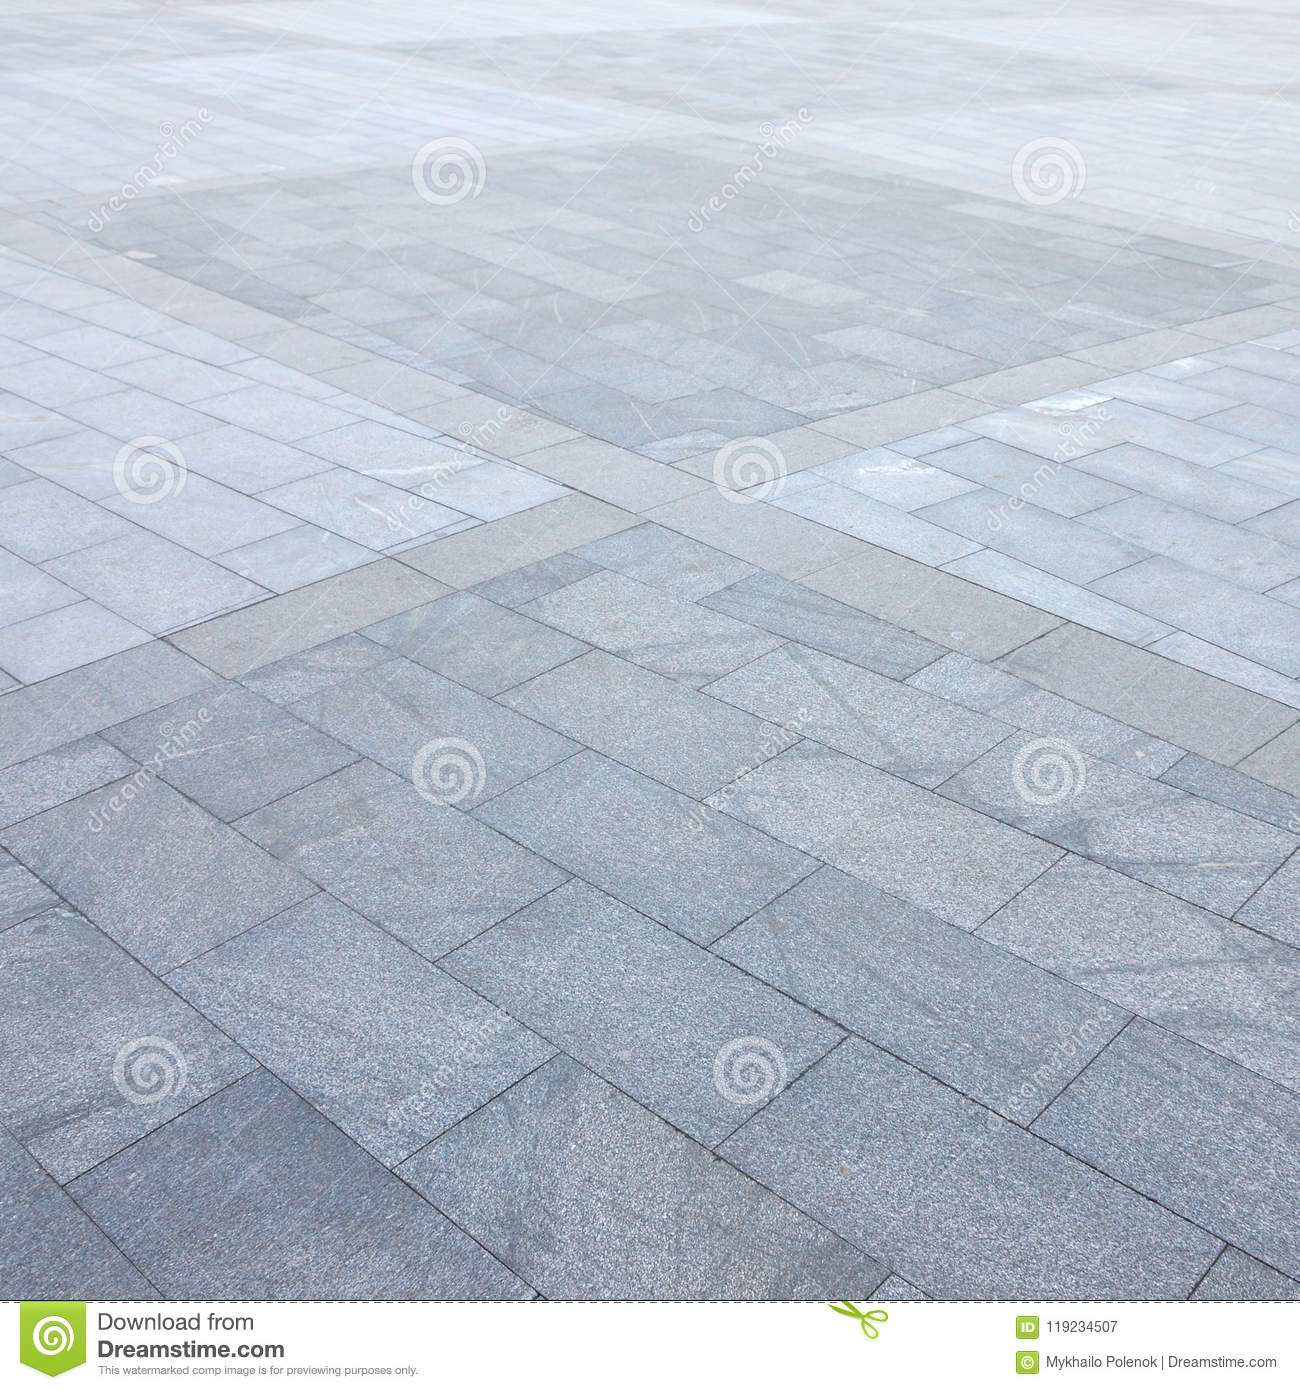 Fragment Of The Square Paved Of A Large Granite Tiles Stock Image